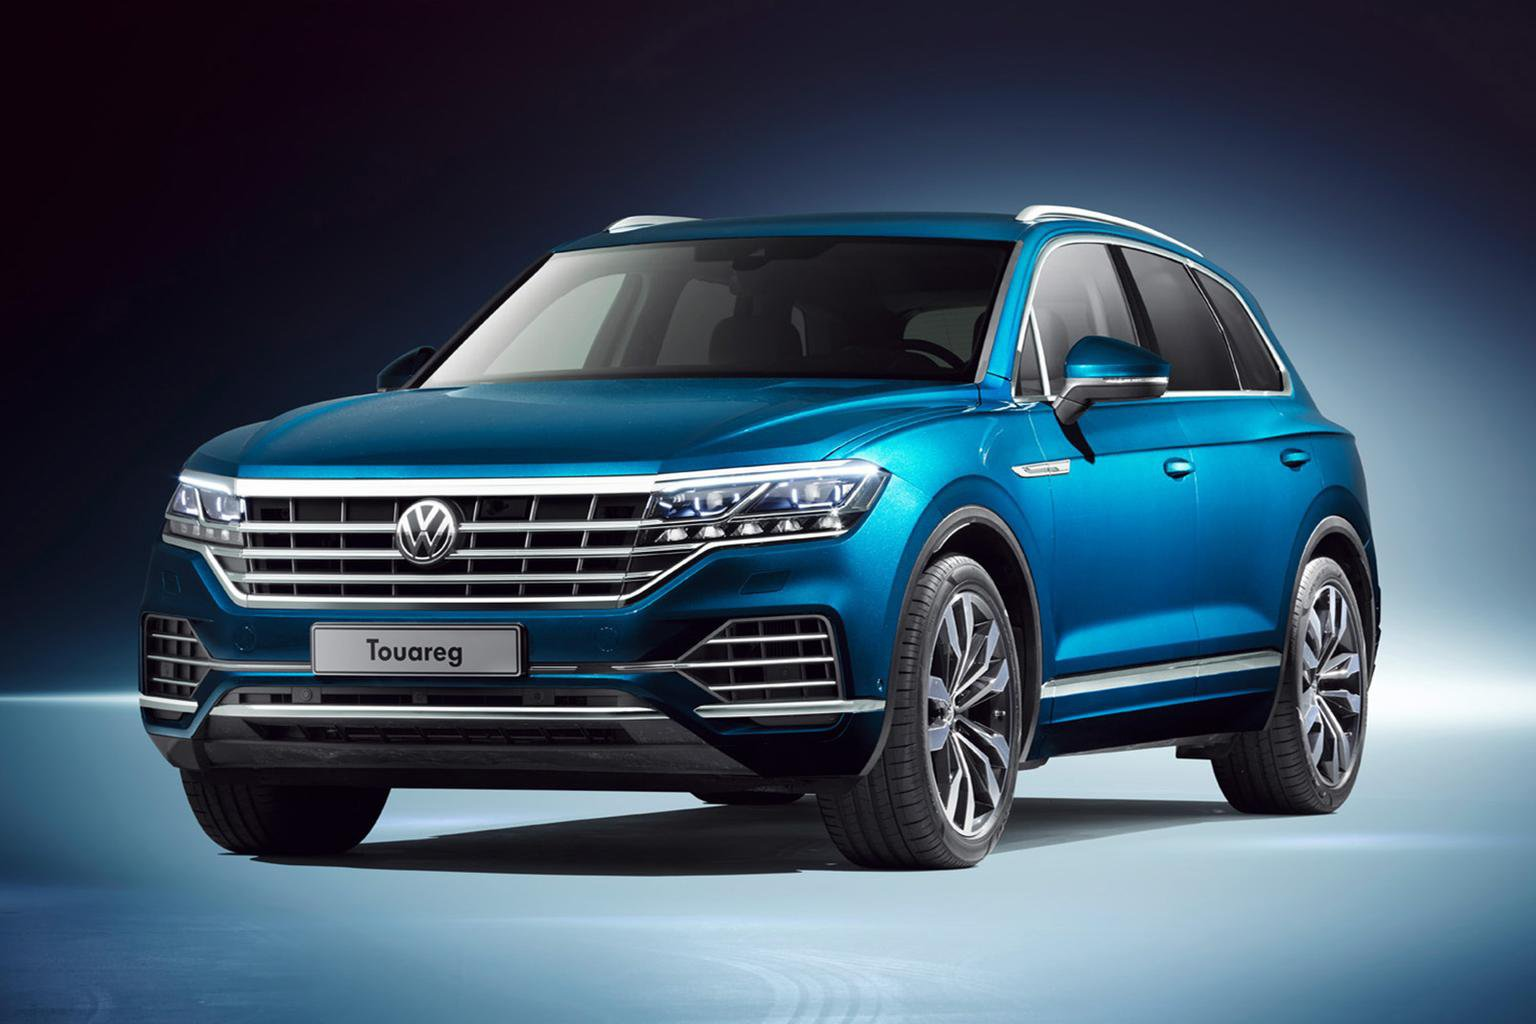 2018 Volkswagen Touareg – price, specs and release date